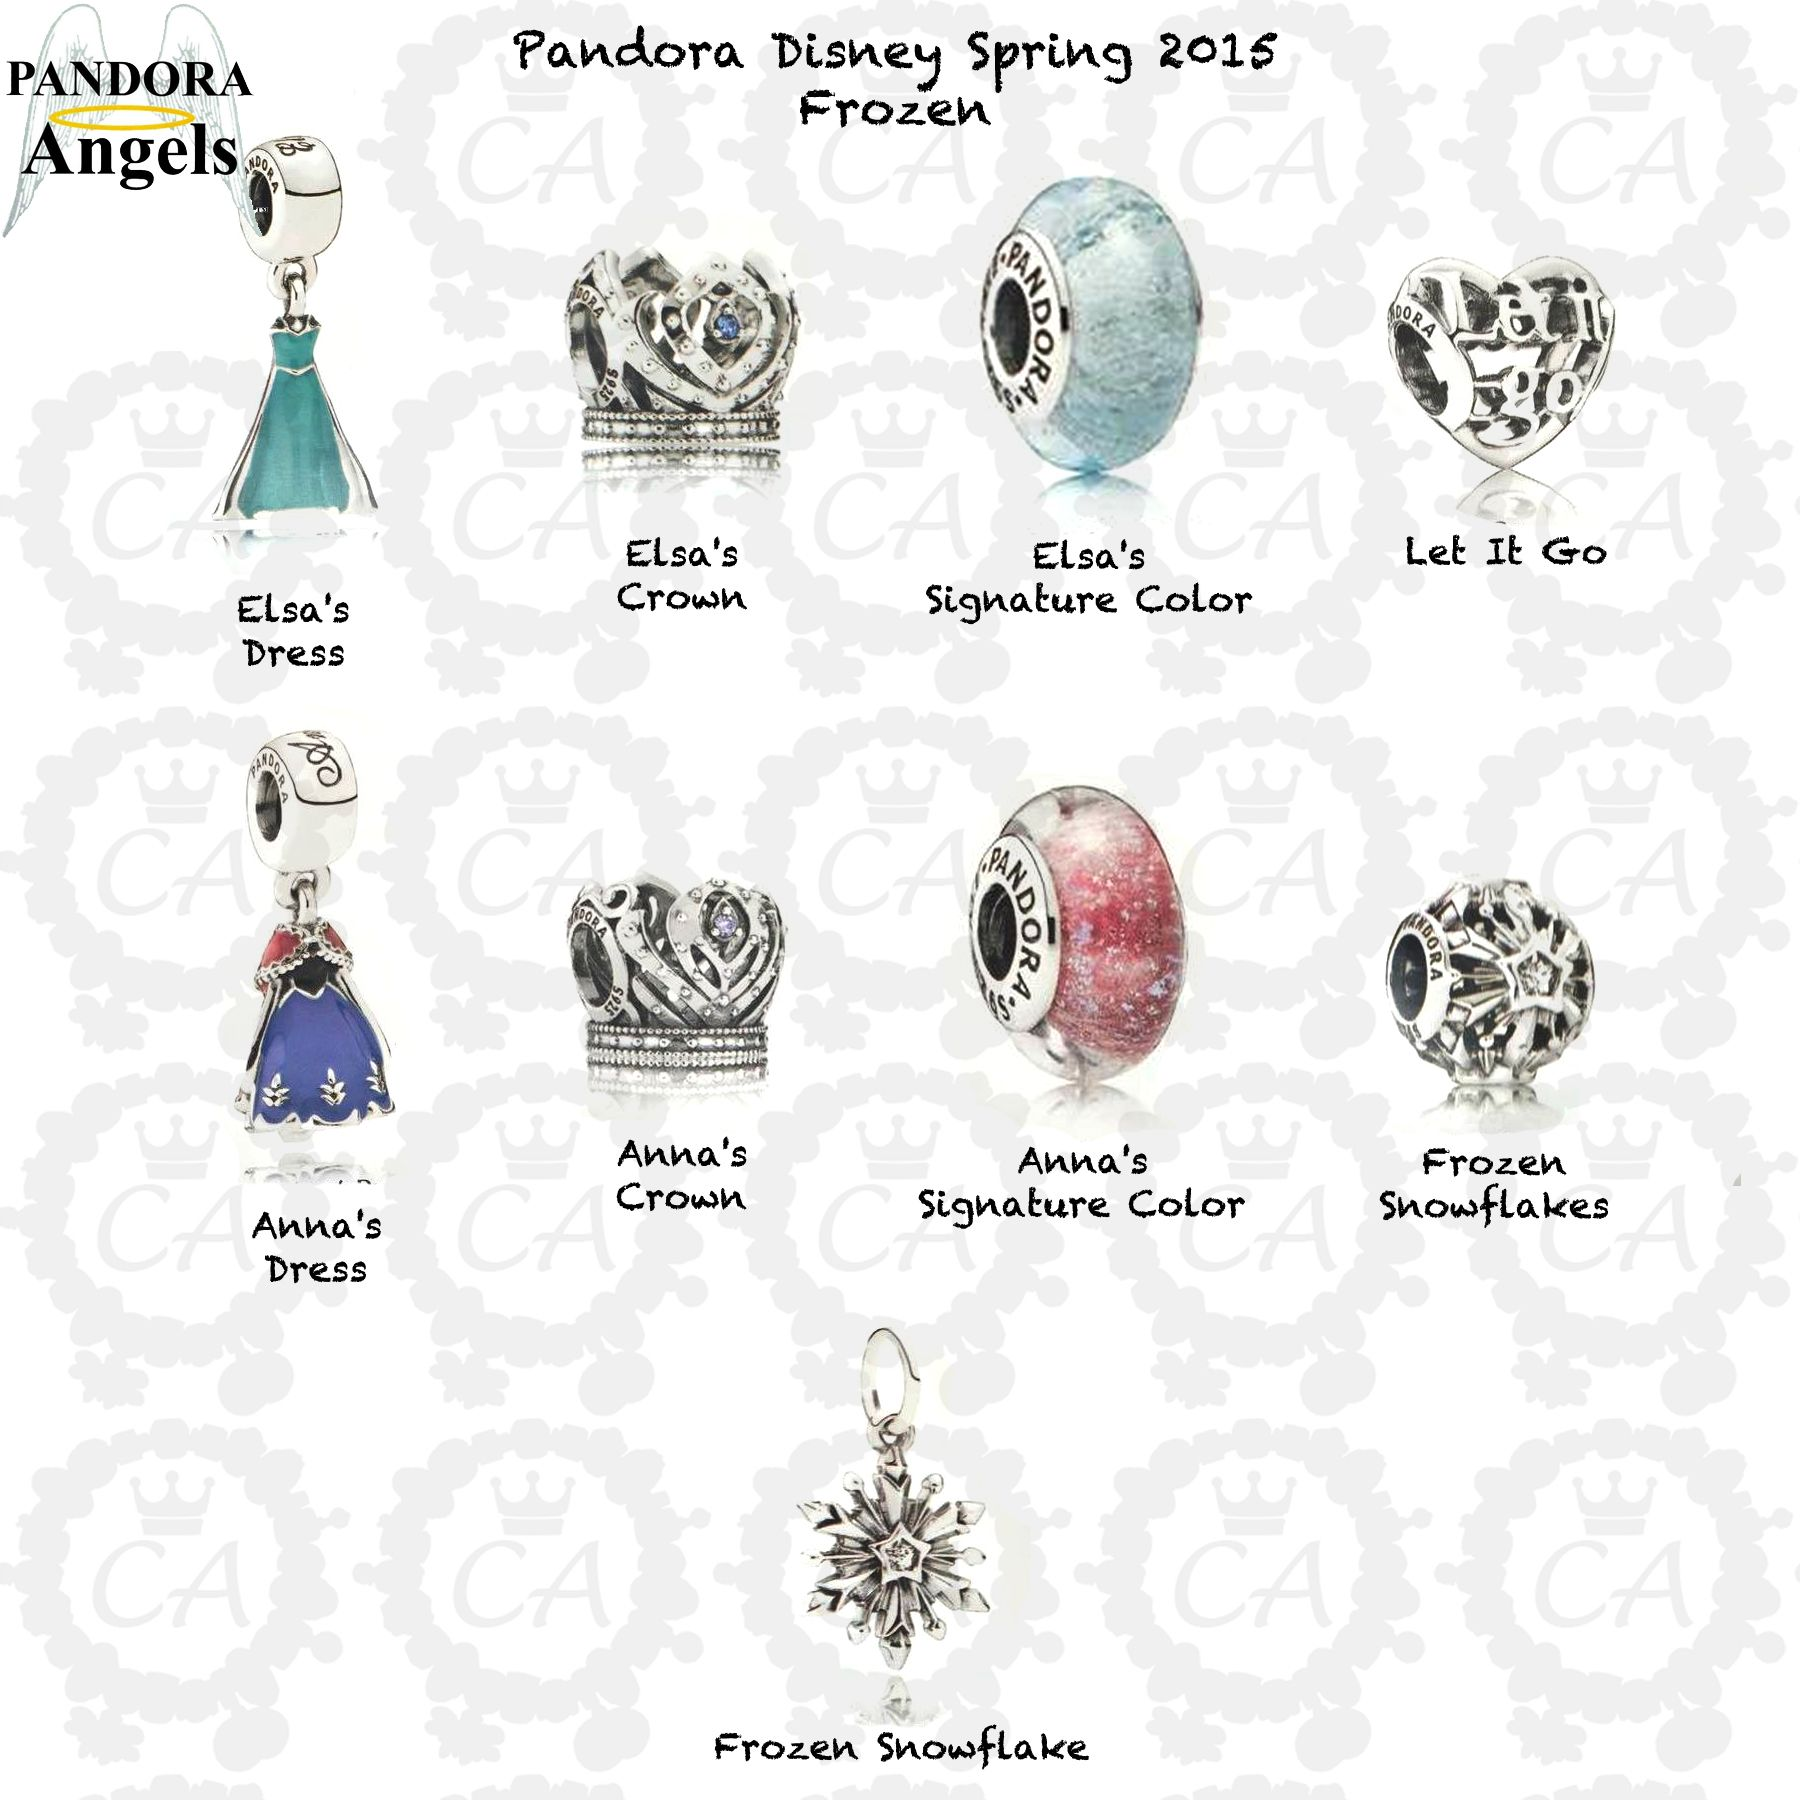 1000+ images about Pandora on Pinterest | Disney, Online shopping and Pandora jewelry